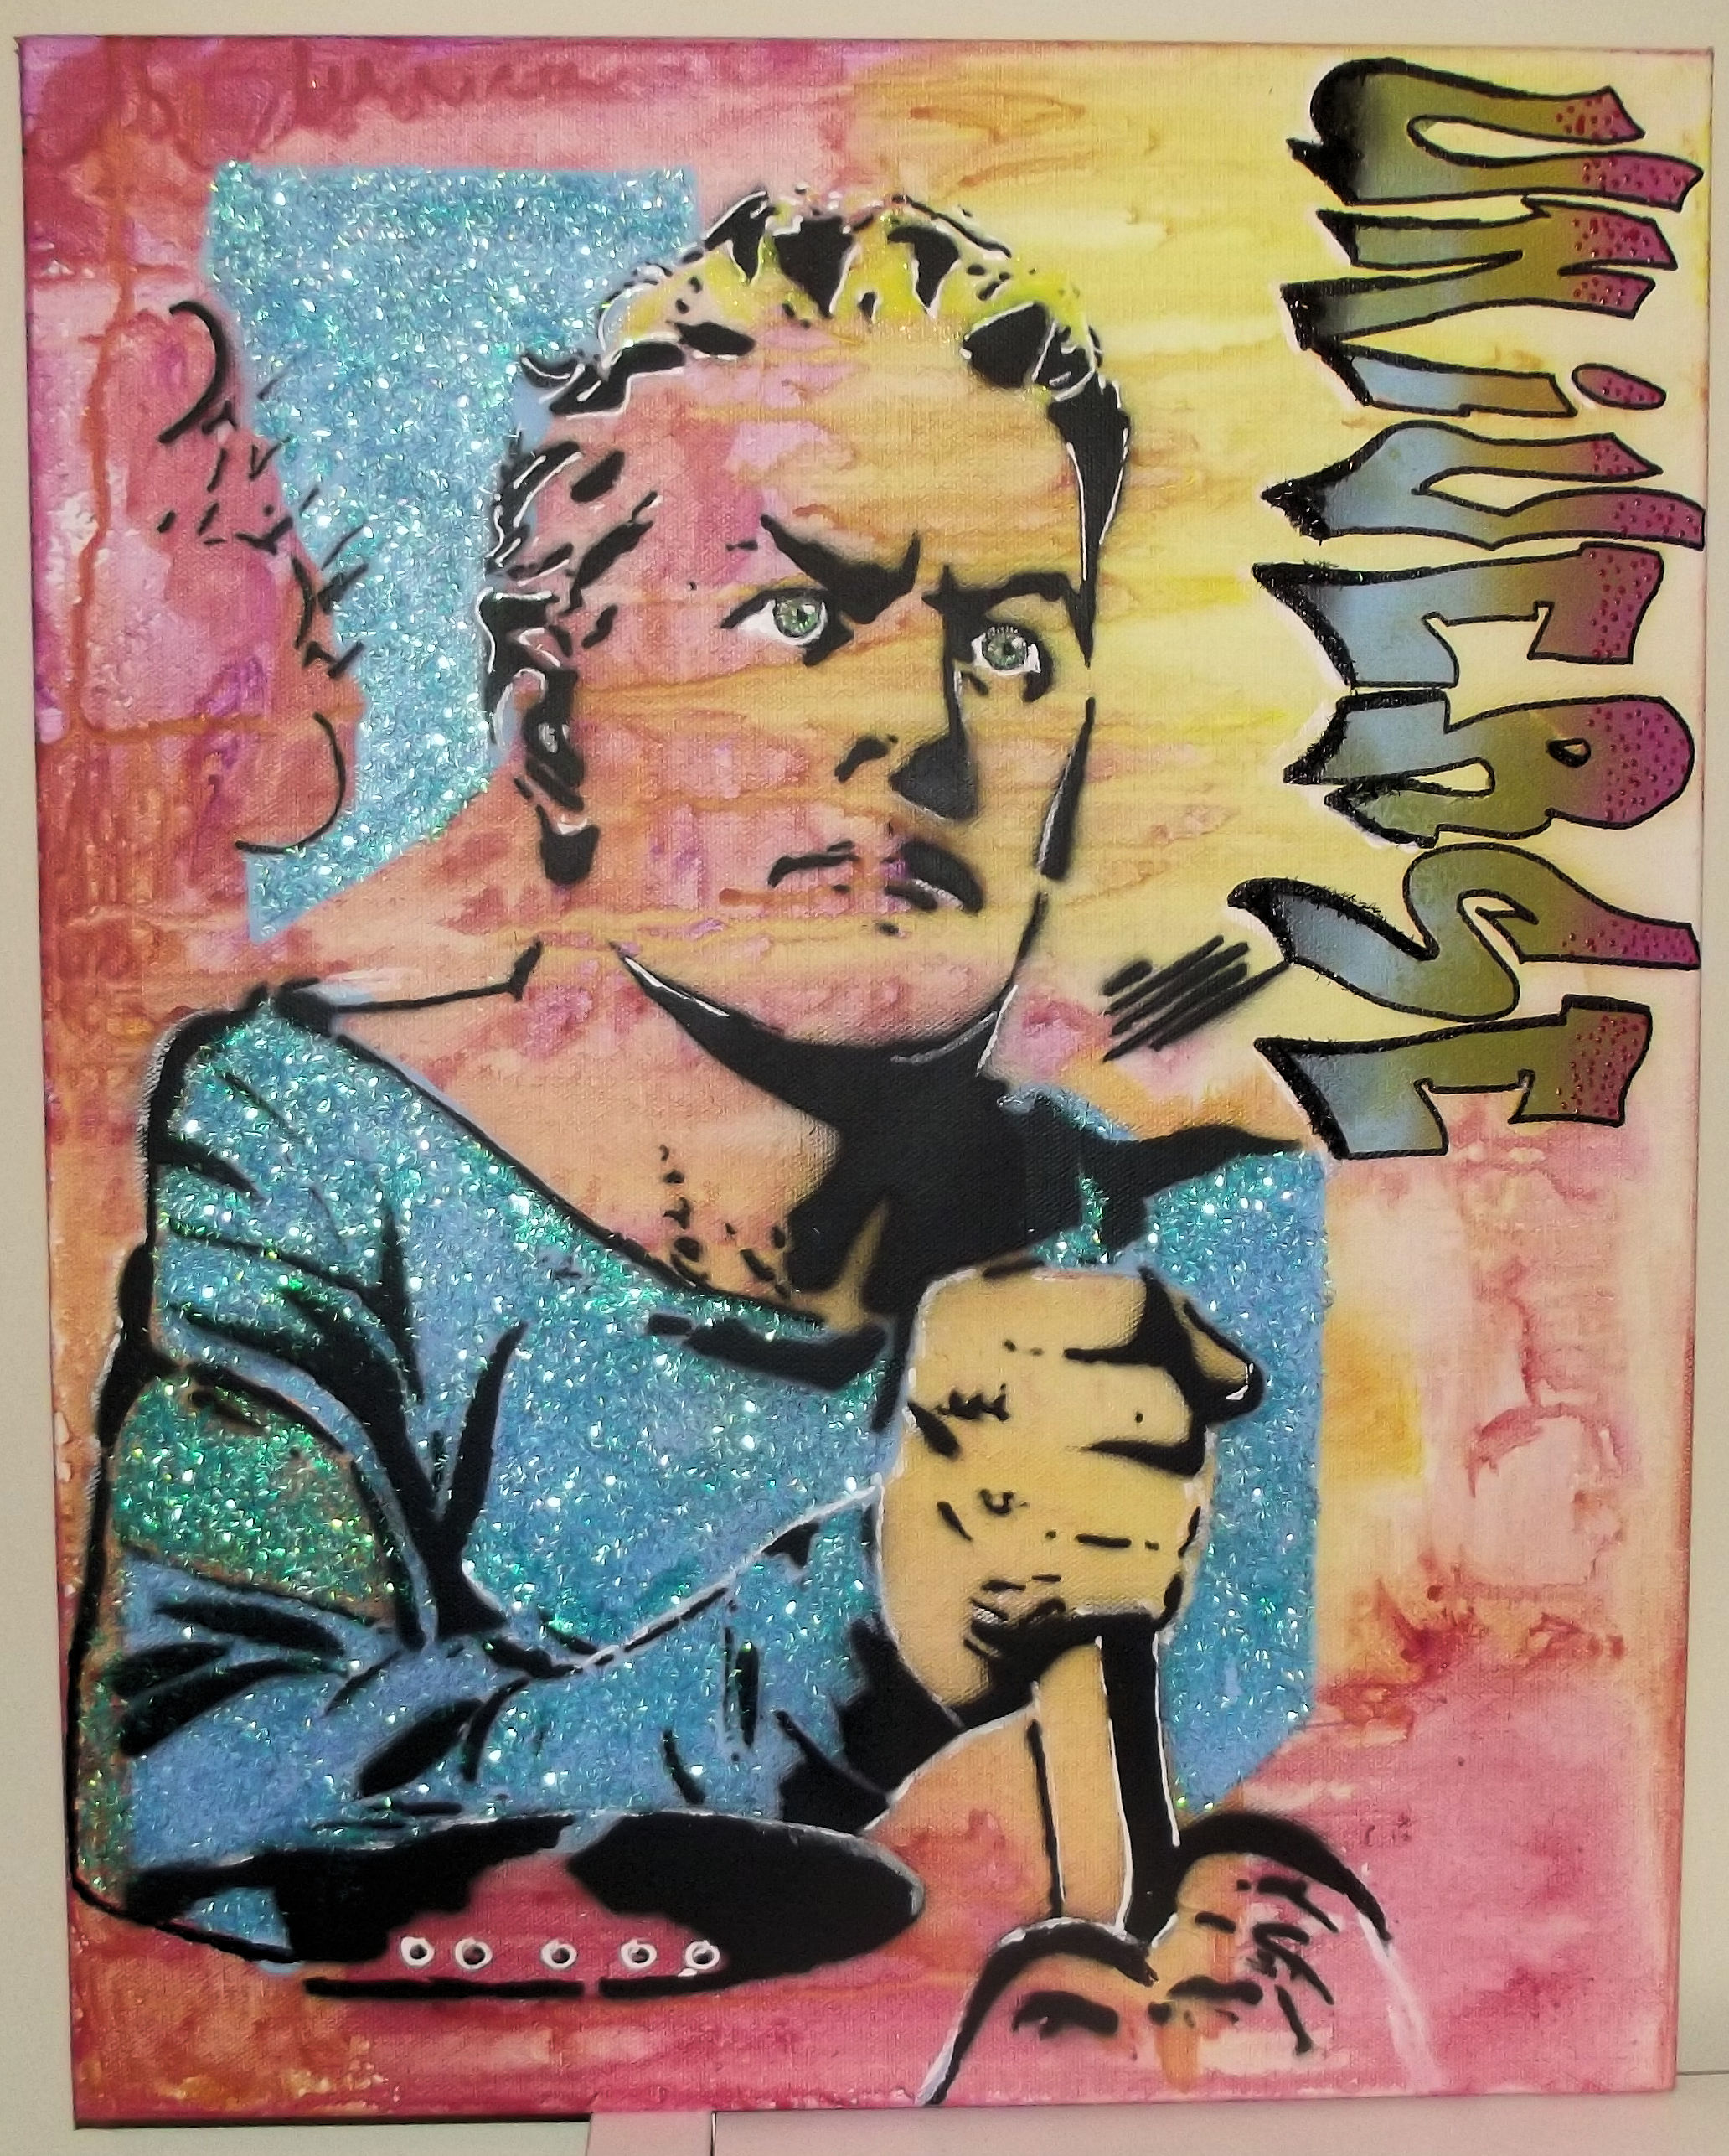 King of Universe Glitter Original Pop Graffiti Art